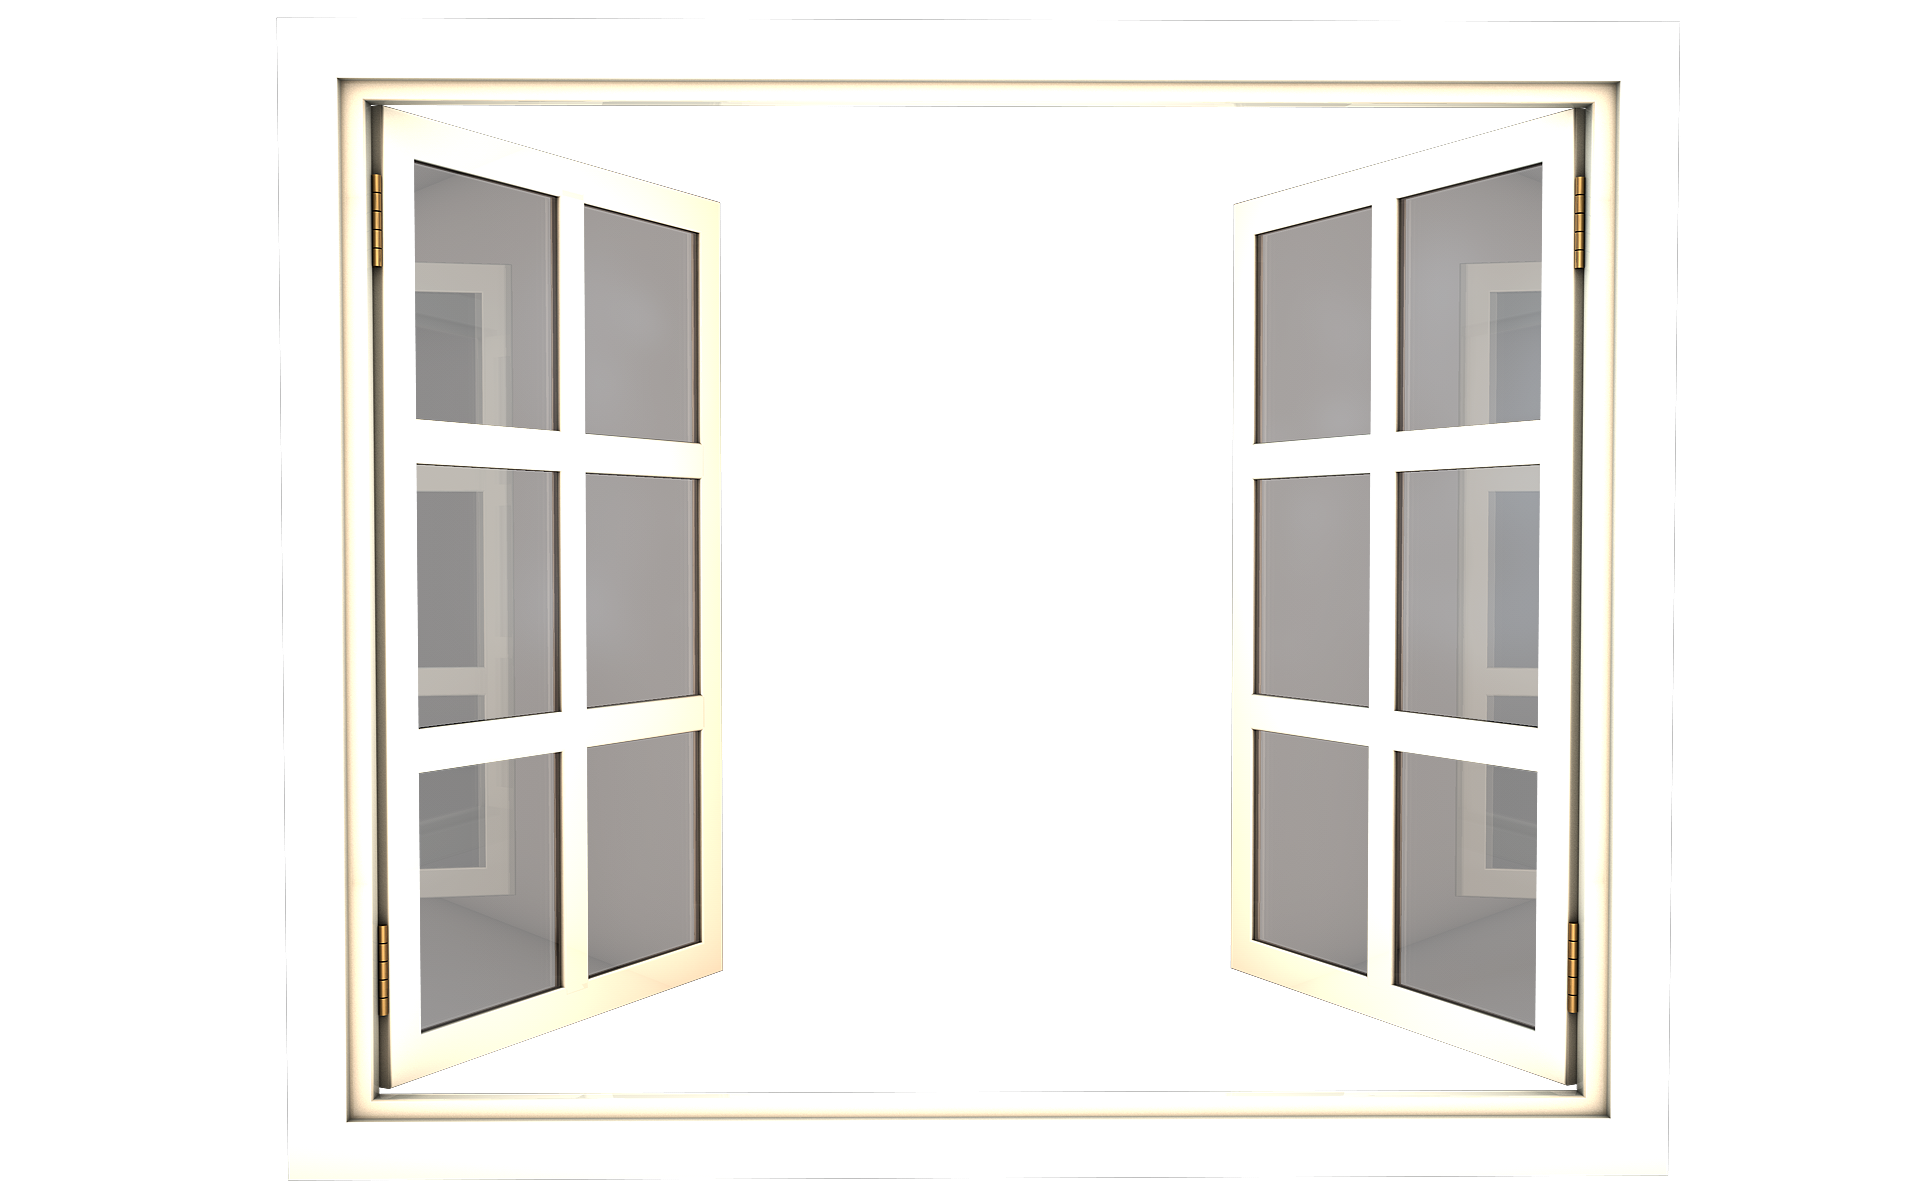 White clipart window frame. Png image purepng free